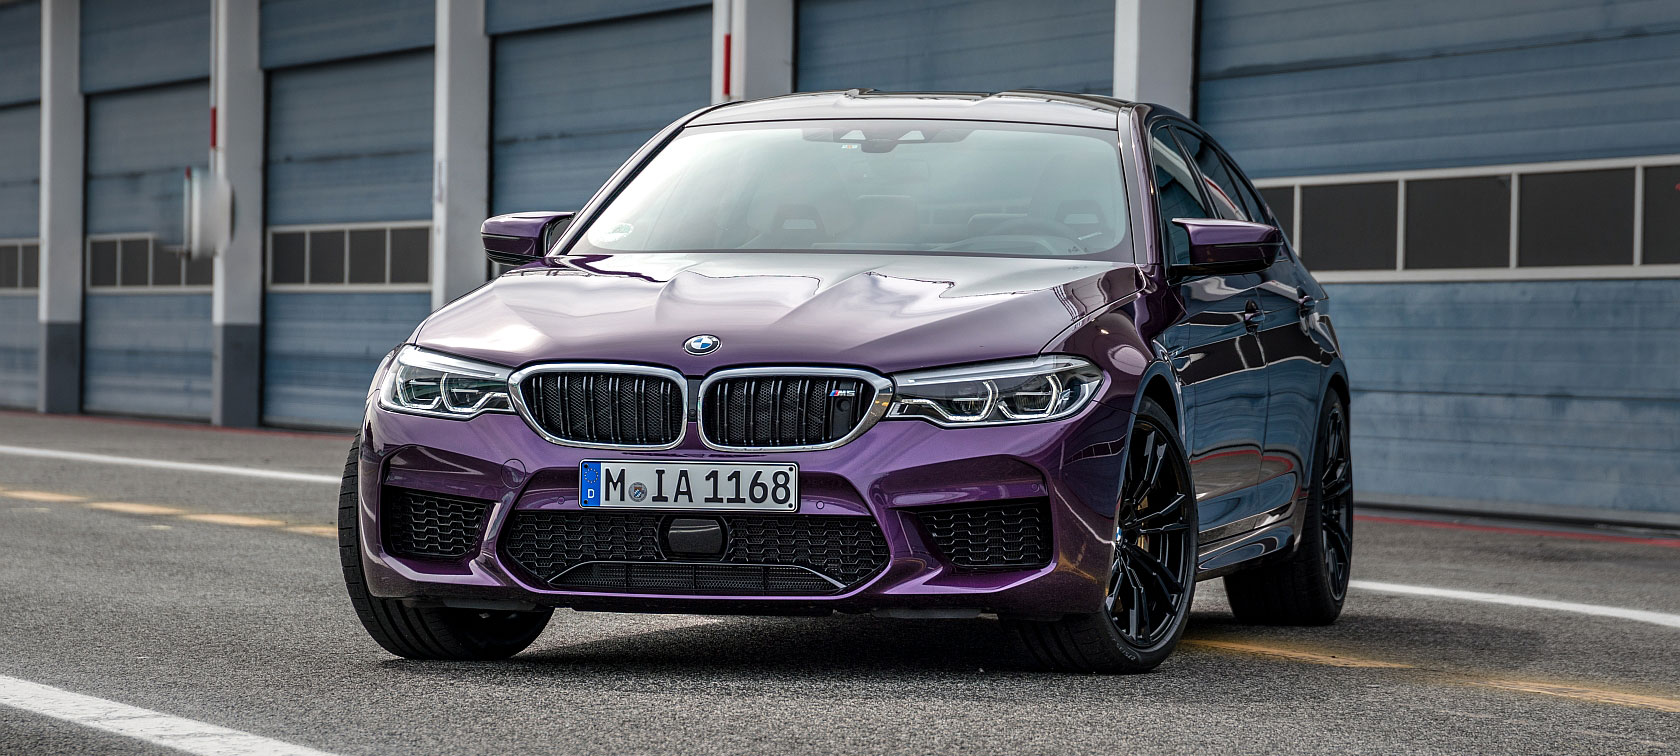 BMW M5 in Purple Silk metallic